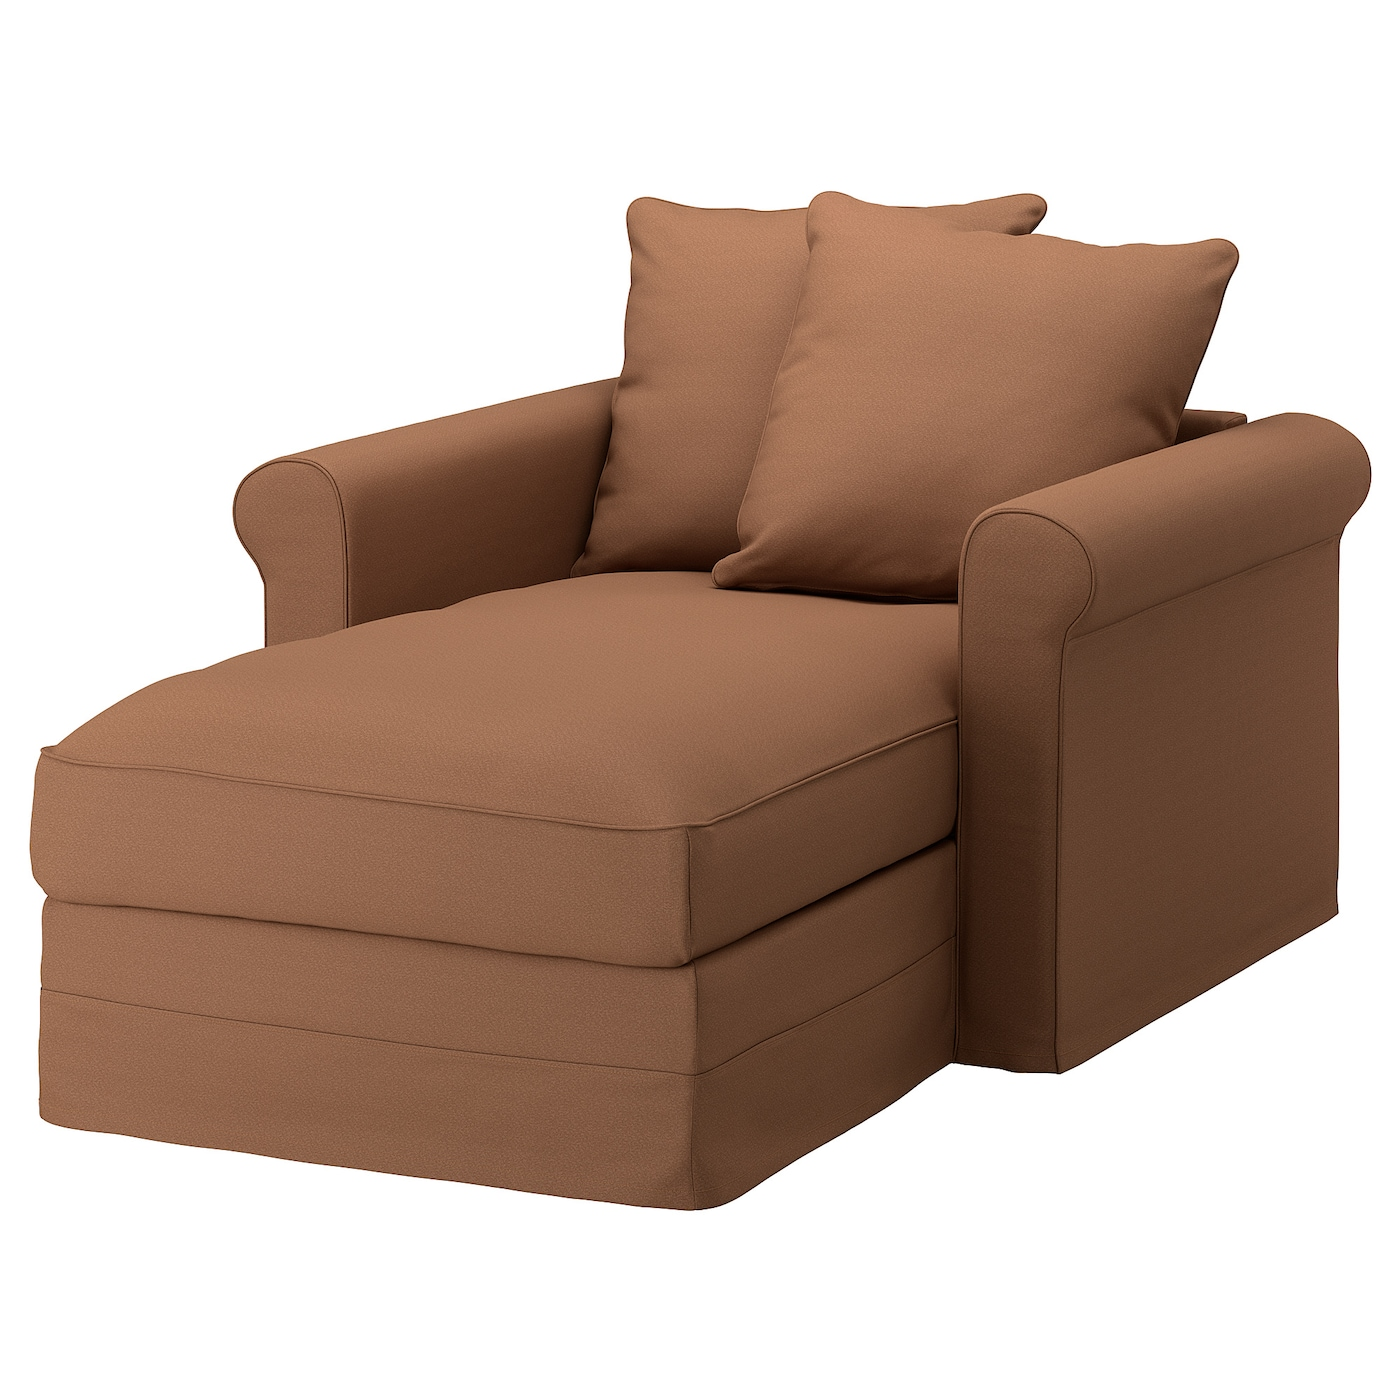 seat furniture hamilton in vintage brown raf modular room left chocolate leather chaise living sofa sofas with laf freedom mod